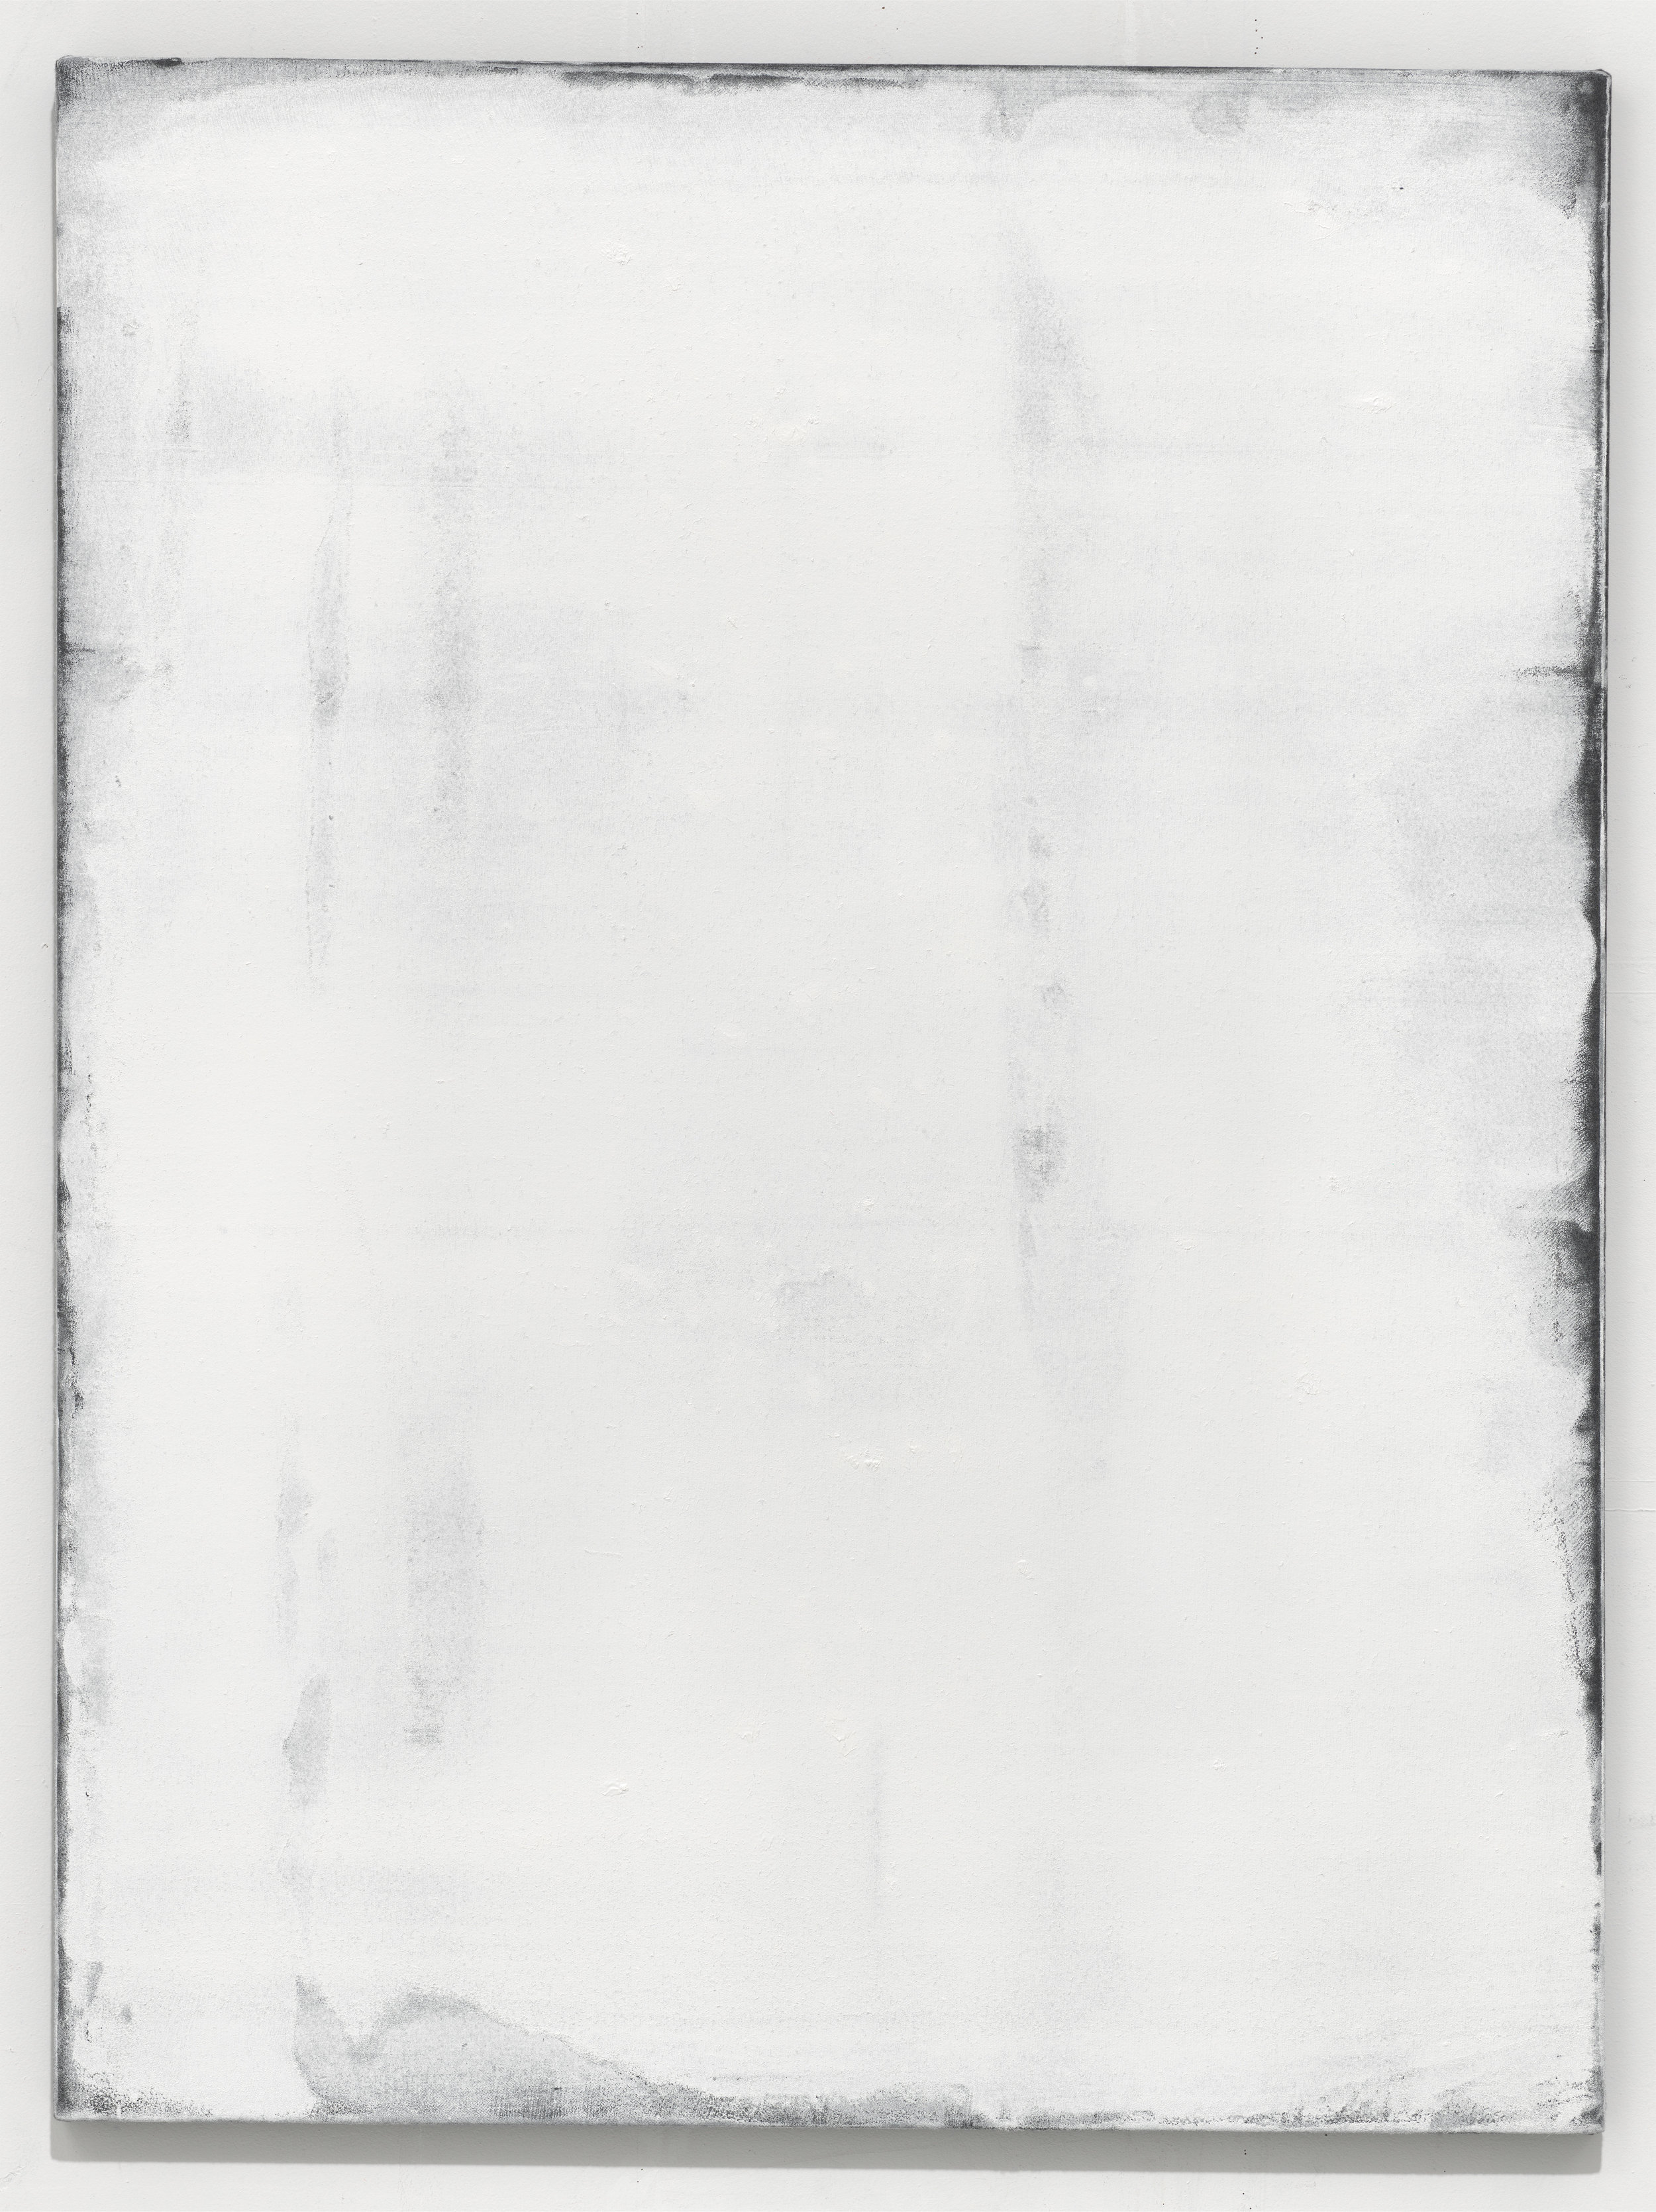 Untitled, 2013 oil on fabric 153 x 113 cm - 60 1/4 x 44 1/2 inches